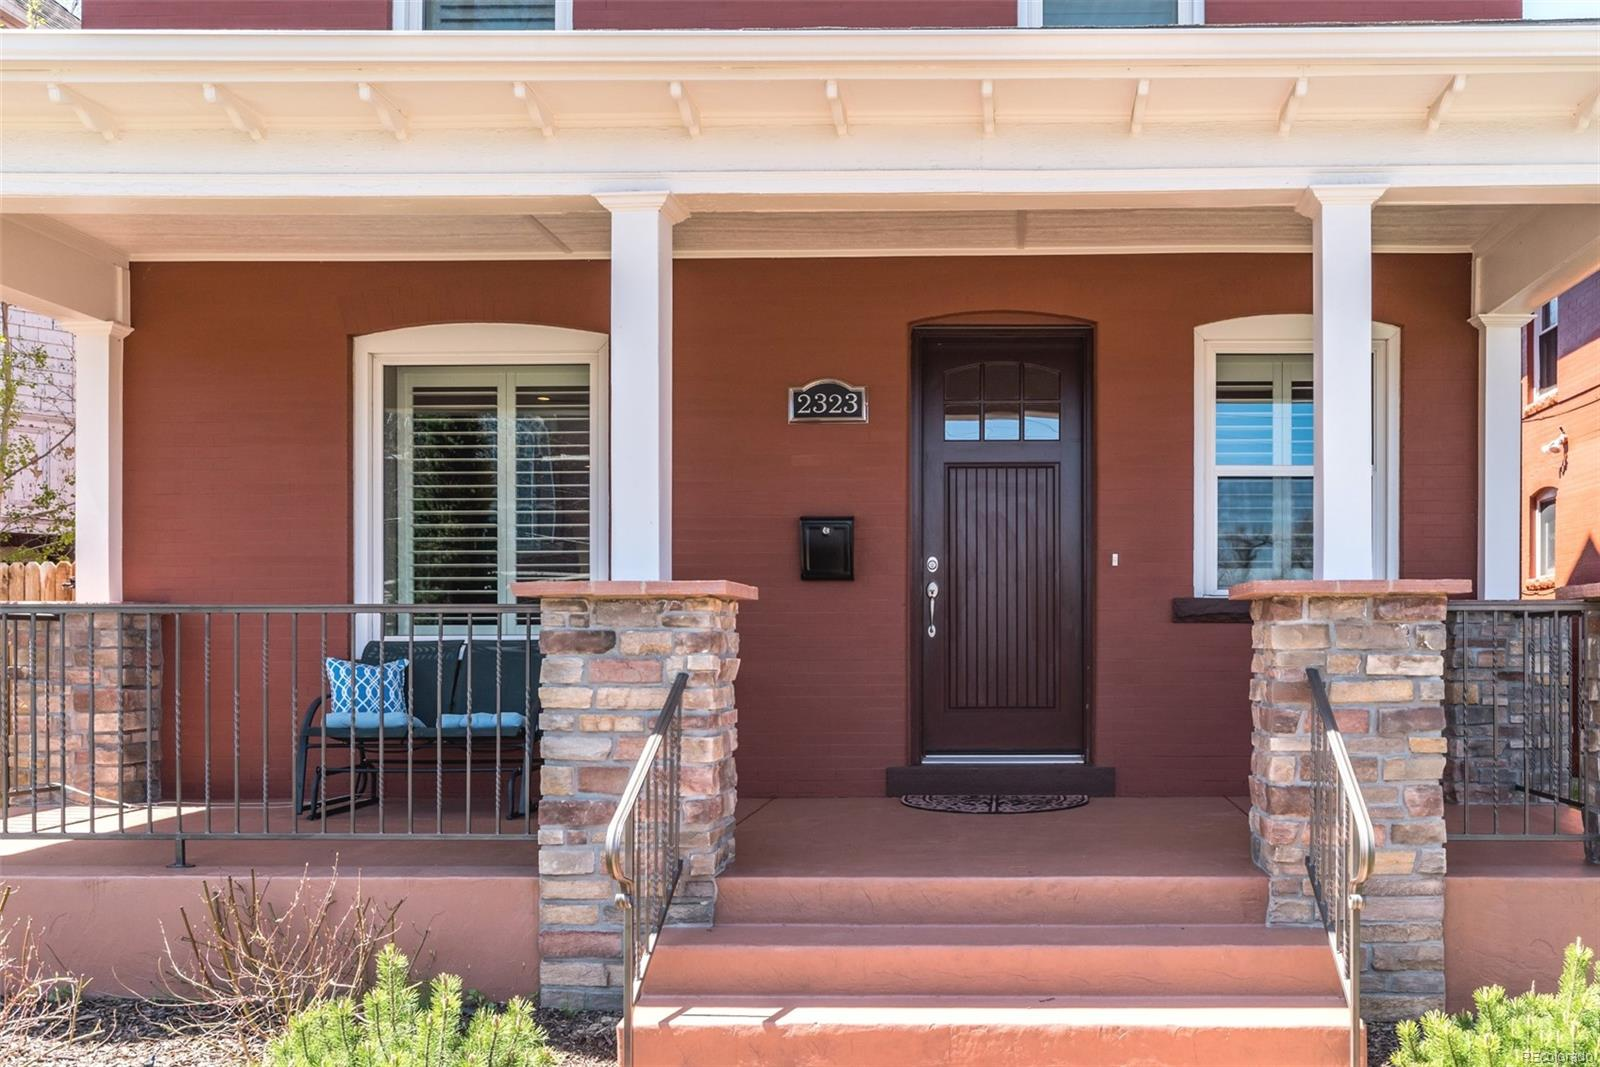 EVERYTHING IS NEW, NEW, NEW! FRONT PORCH, STAMPED CONCRETE WALK, NEW POWDER-COATED RAILINGS & BRICKWORK!